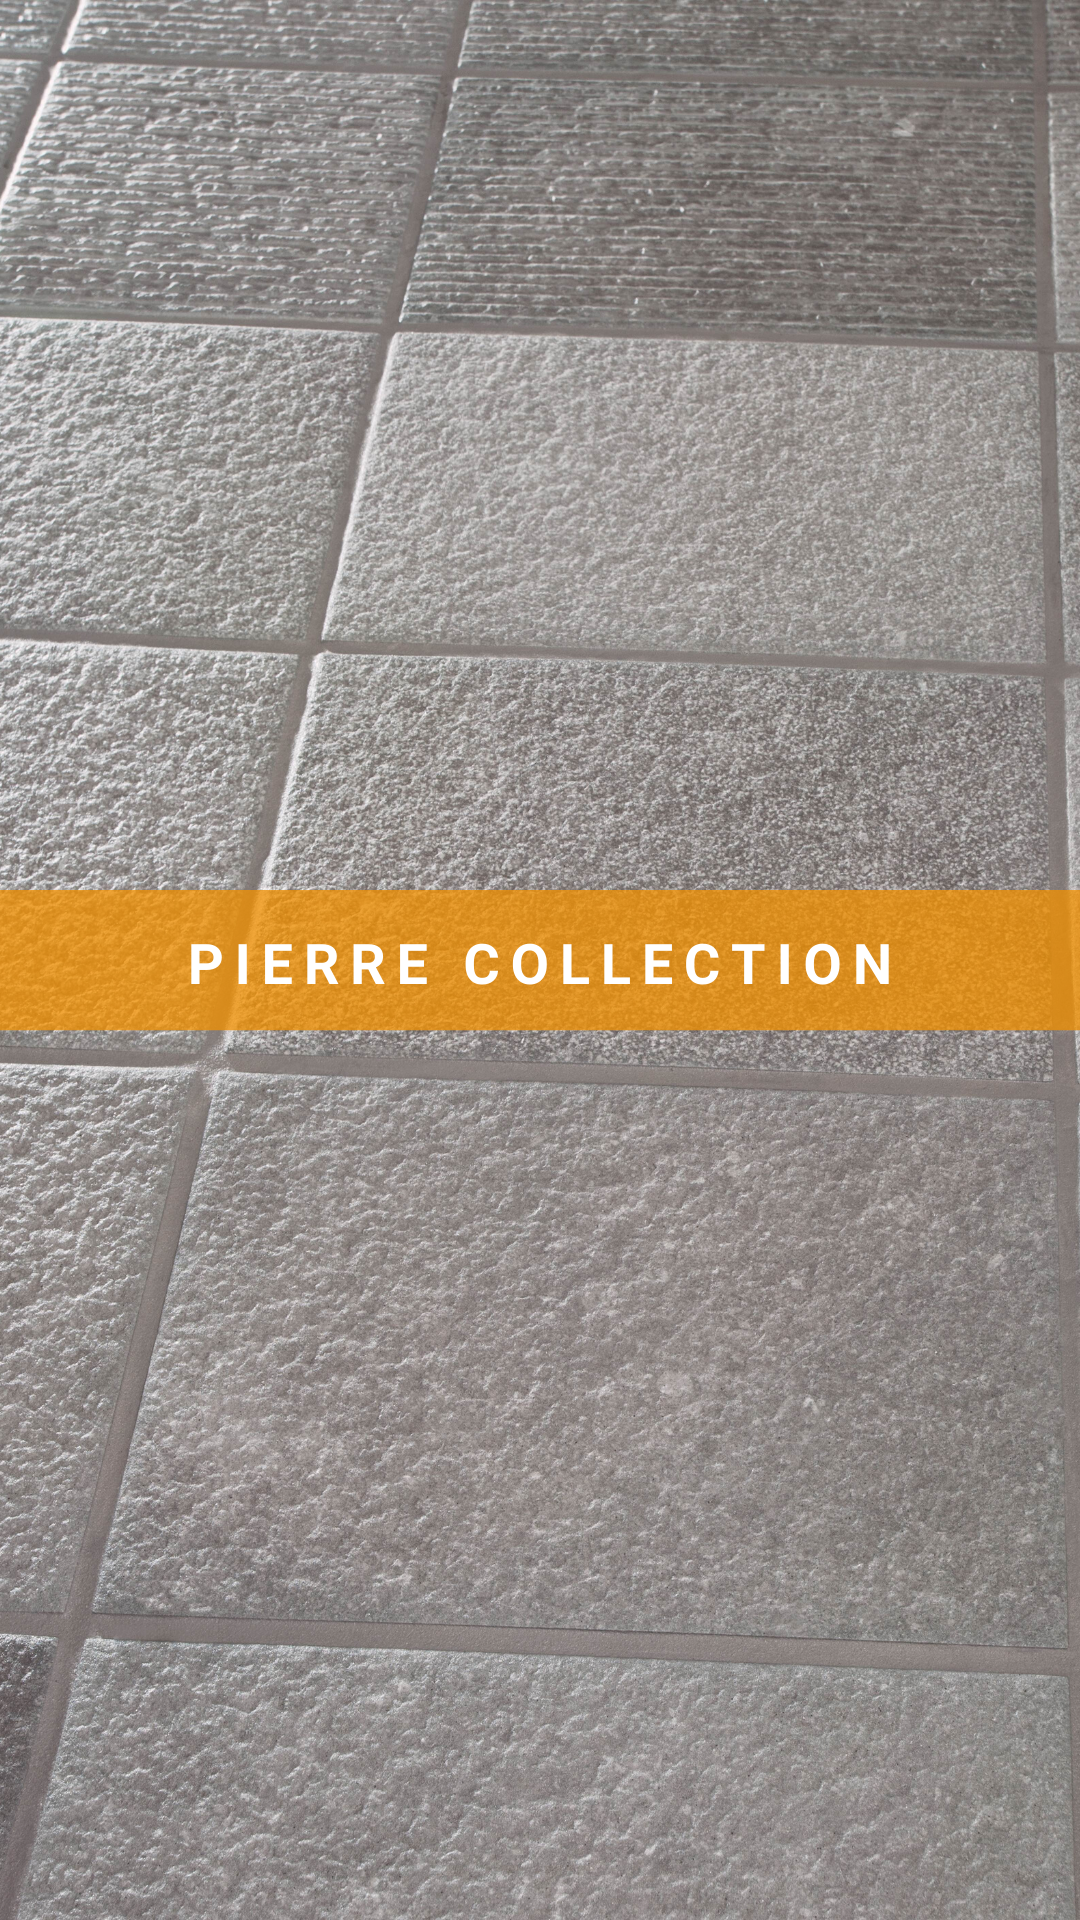 Three Different Finishes Of High Definition And Realism That Incorporate The Design Of Fossils Both Rocky And Marine Giving Pierre Small Pools Porcelain Tile